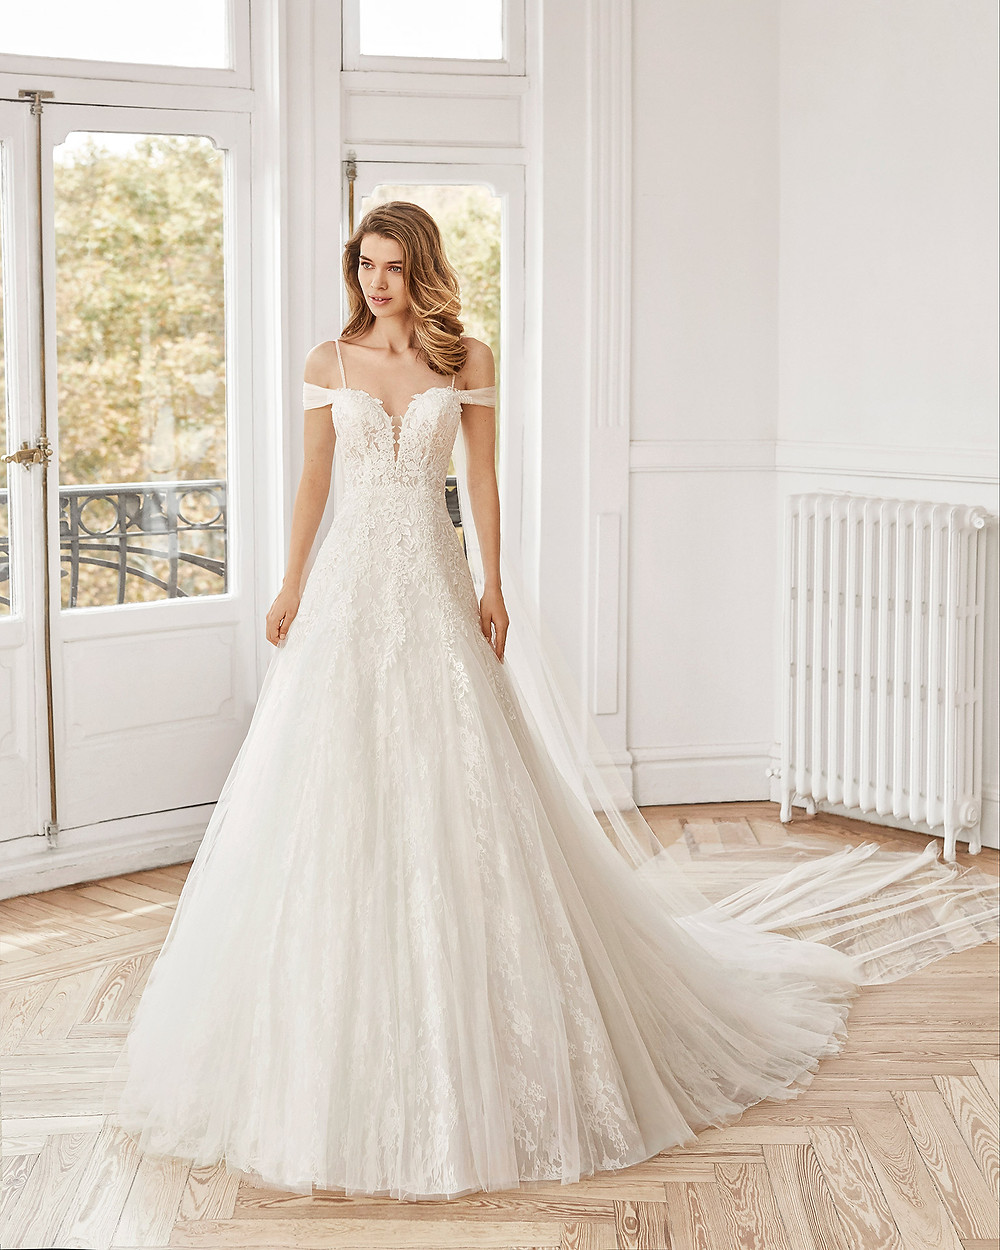 An Aire Barcelona 2020 off the shoulder lace and tulle A-line wedding dress with straps